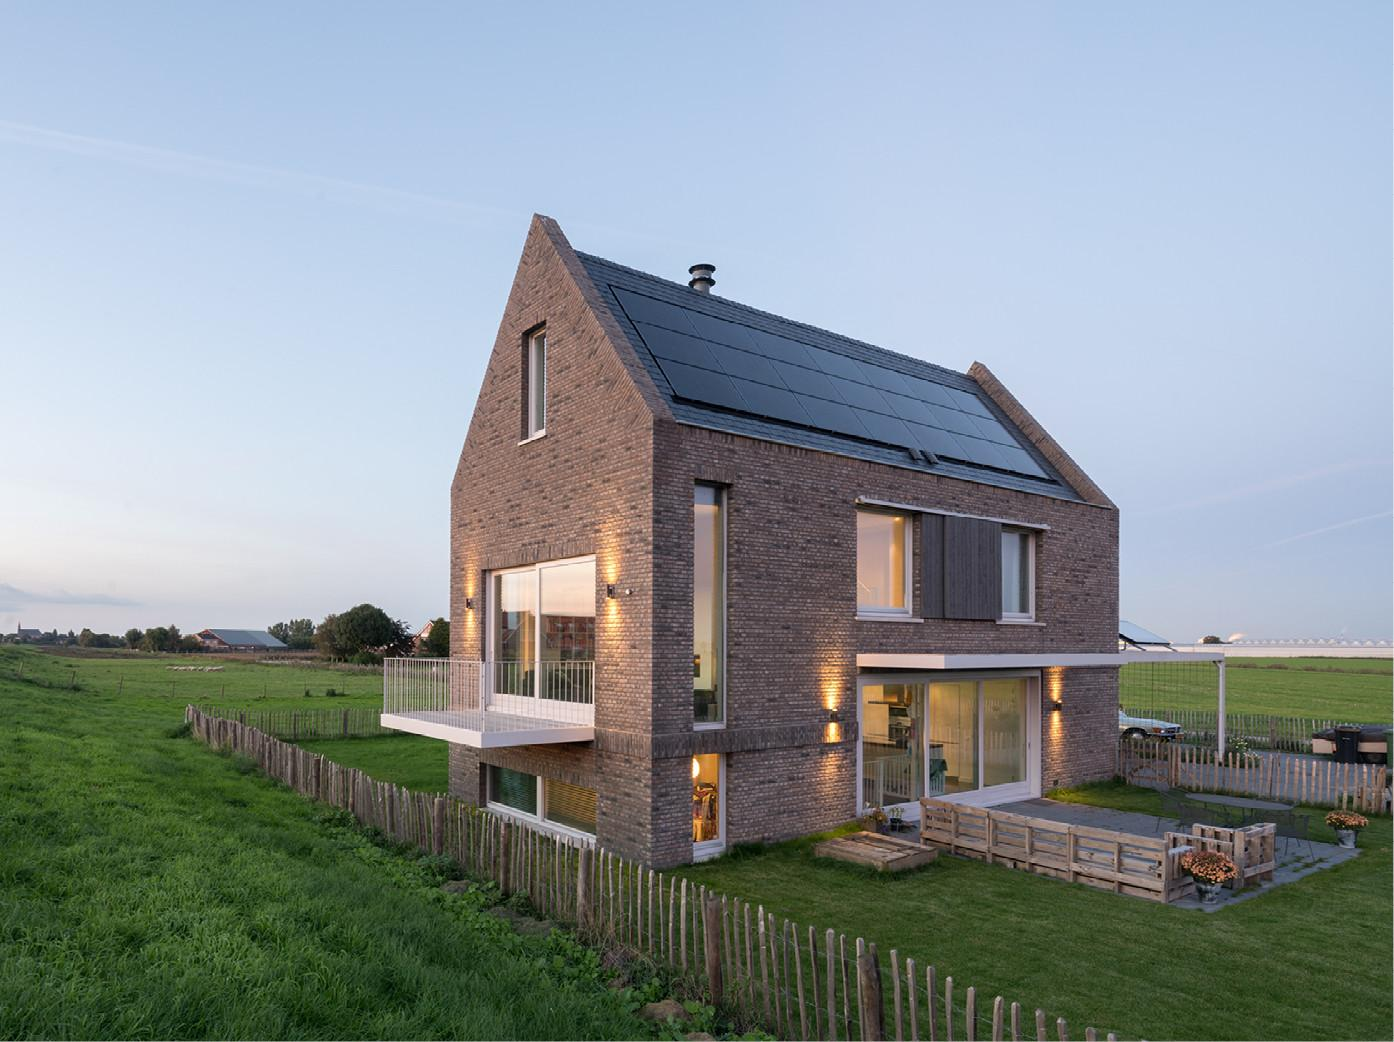 35 Exquisite Contemporary Dutch Home Gable Roof That Will Make Your Eyes Water Trends For 2020 Beautiful Decoratorist